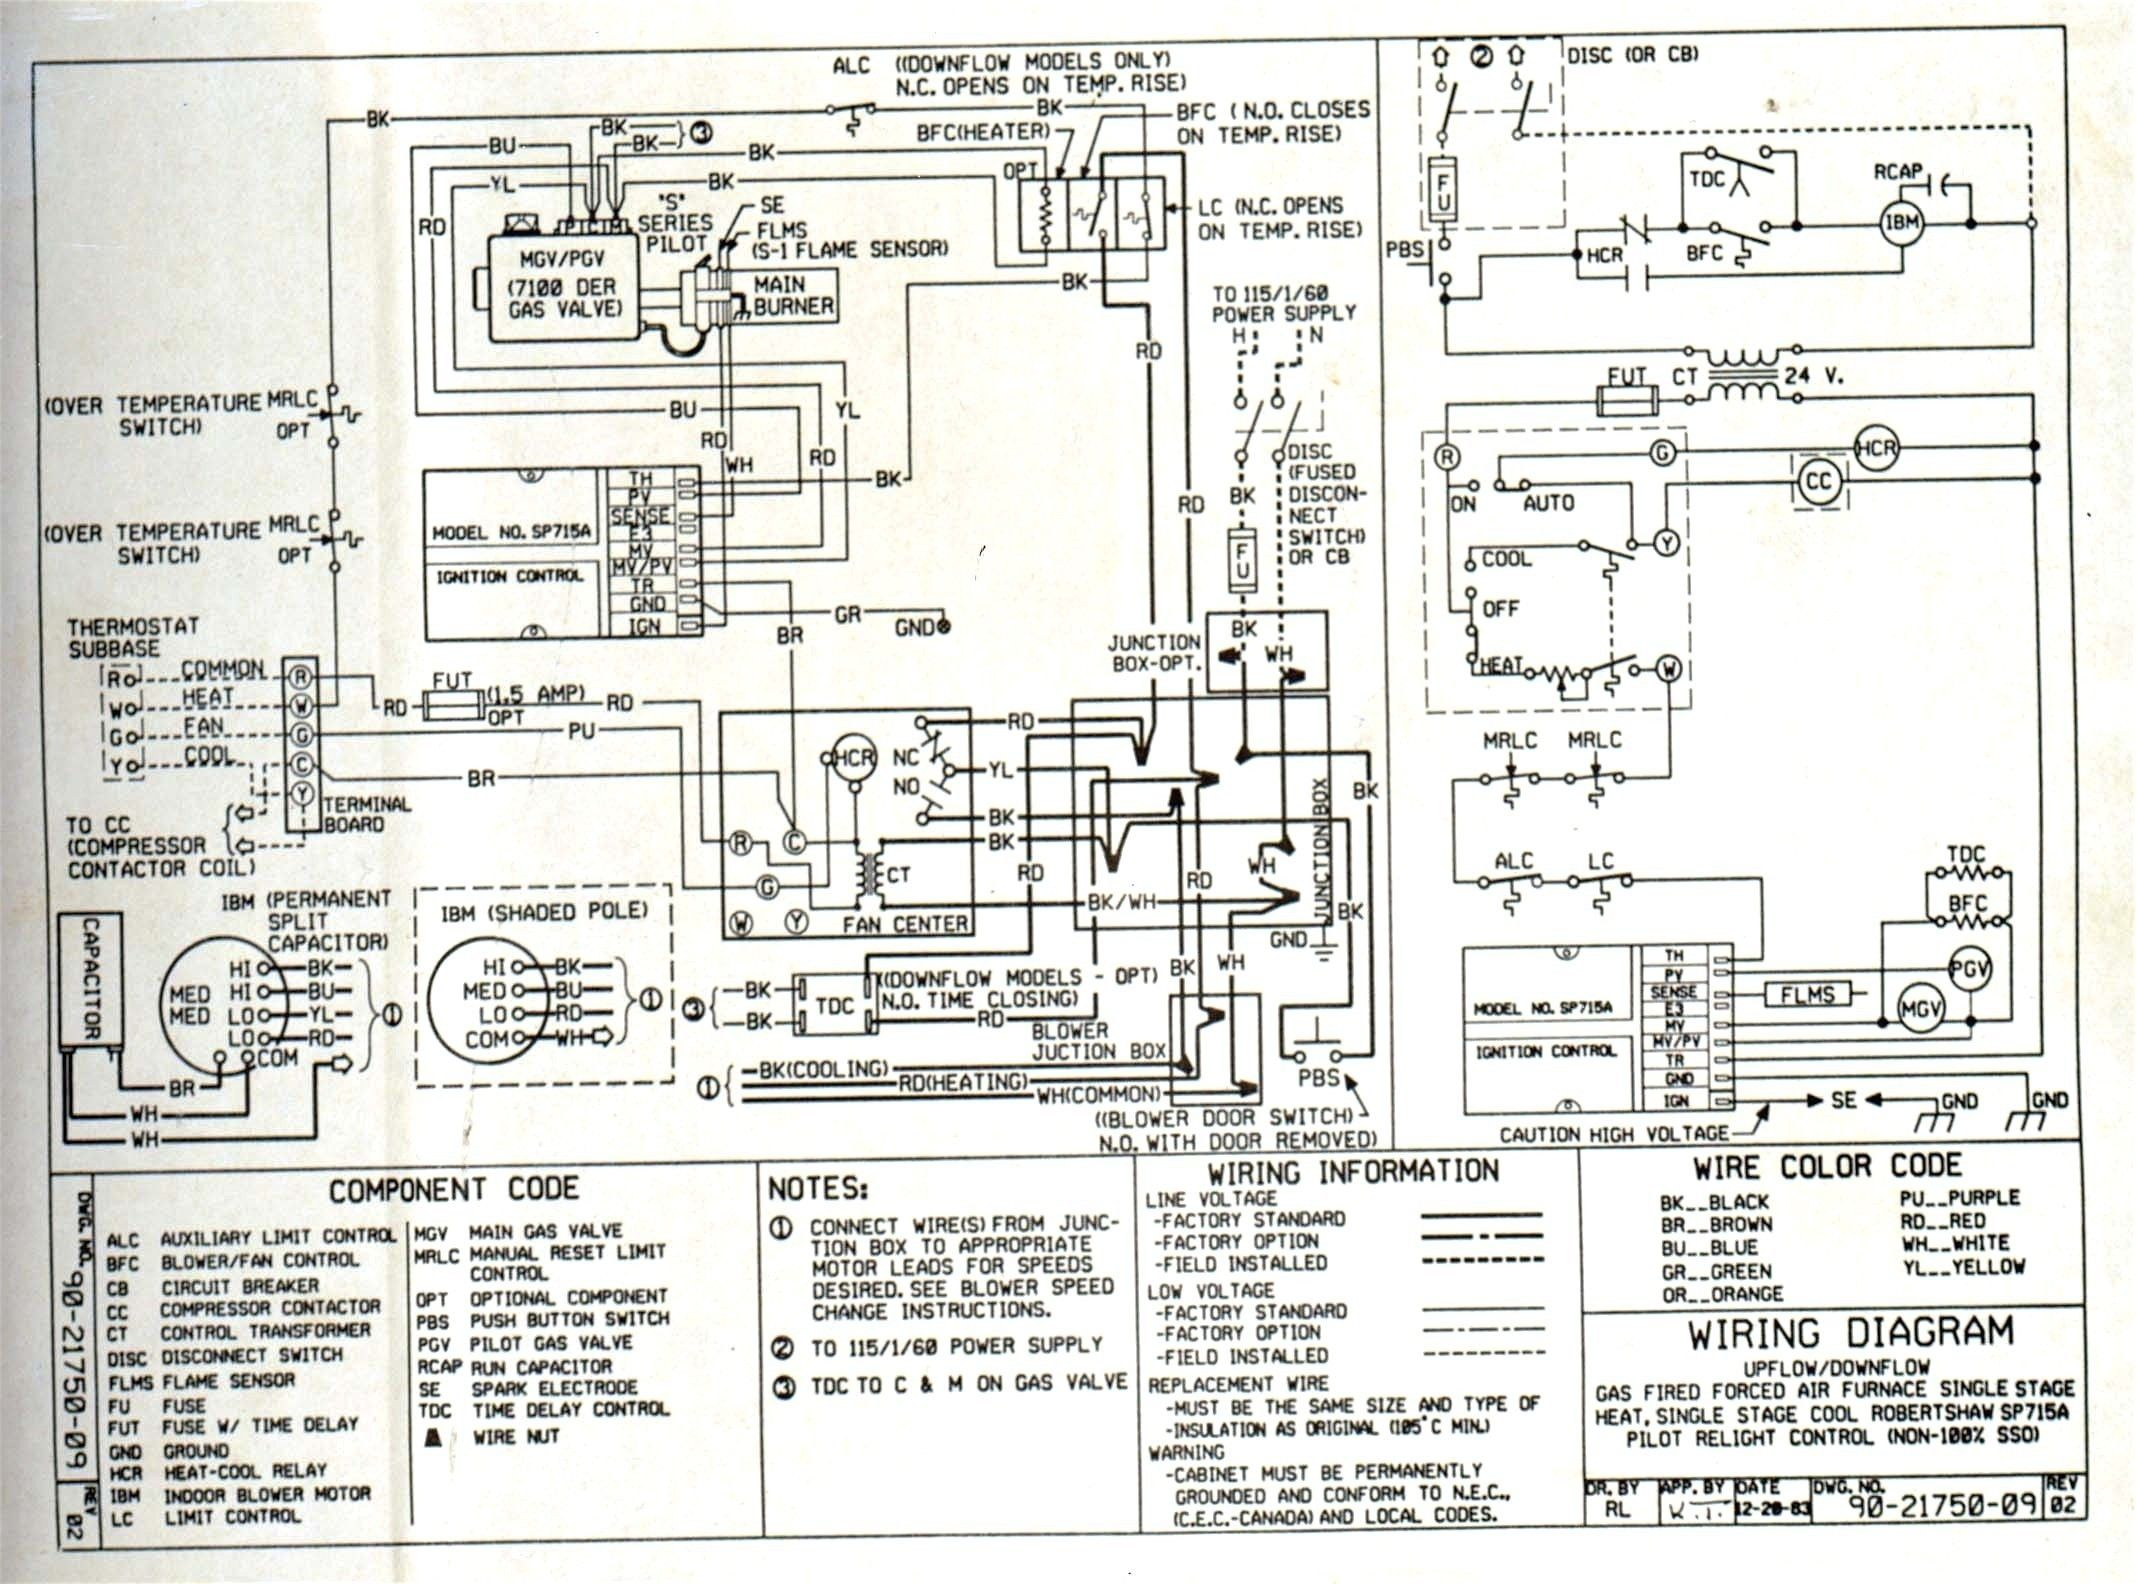 Awesome Solenoid Valve Wiring Diagram In 2020 Thermostat Wiring Heat Pump Furnace